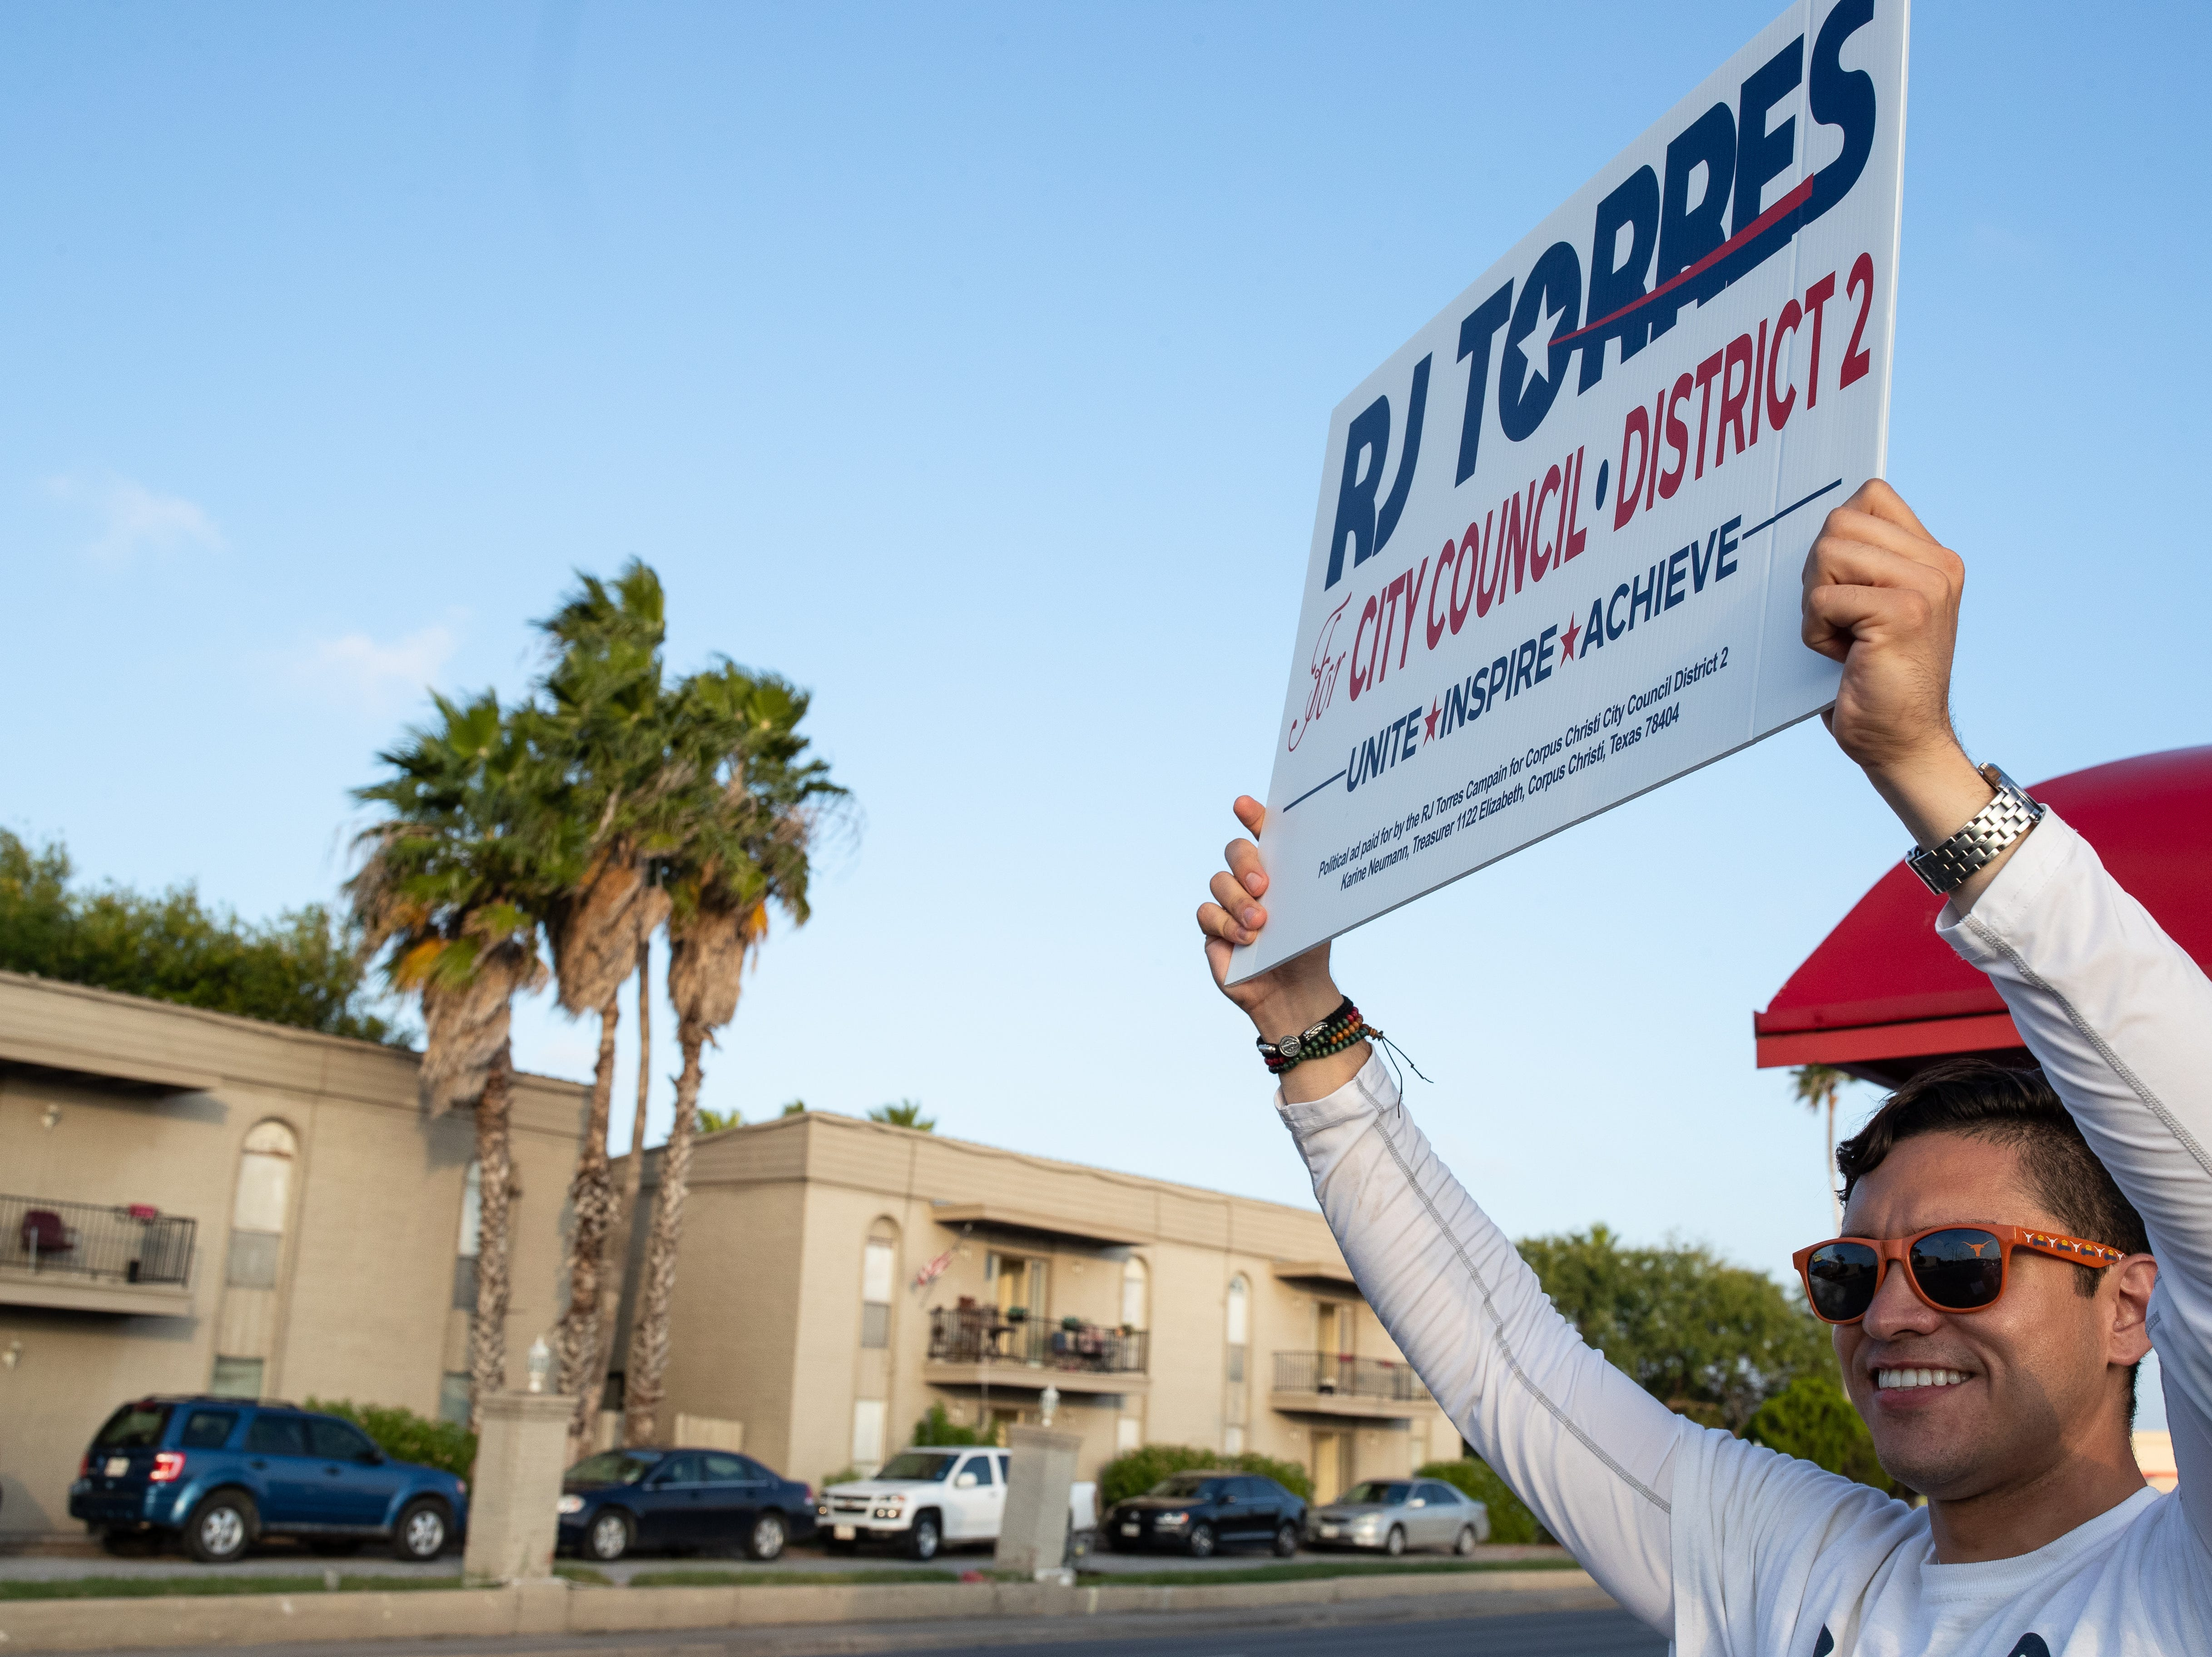 Candidate for Corpus Christi's City Council District 2 seat, RJ Torres campaigns outside the Deaf and Hard of Hearing Center during election day on Tuesday, Nov. 6, 2018.